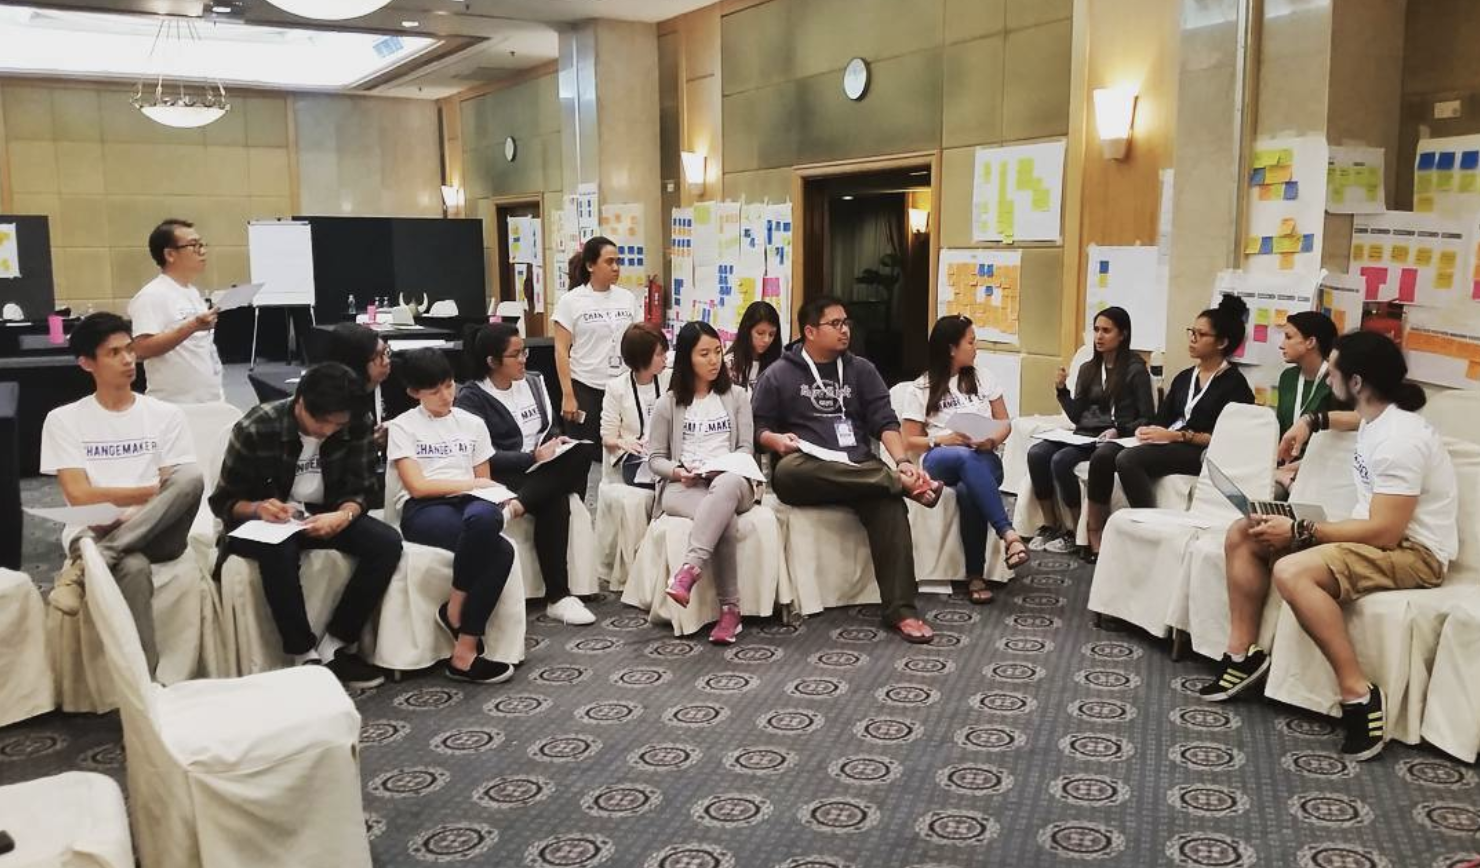 During a mentoring workshop for selected Innovation Challenge participants, a group discusses how they can use human-centered design principles to sharpen their ideas.